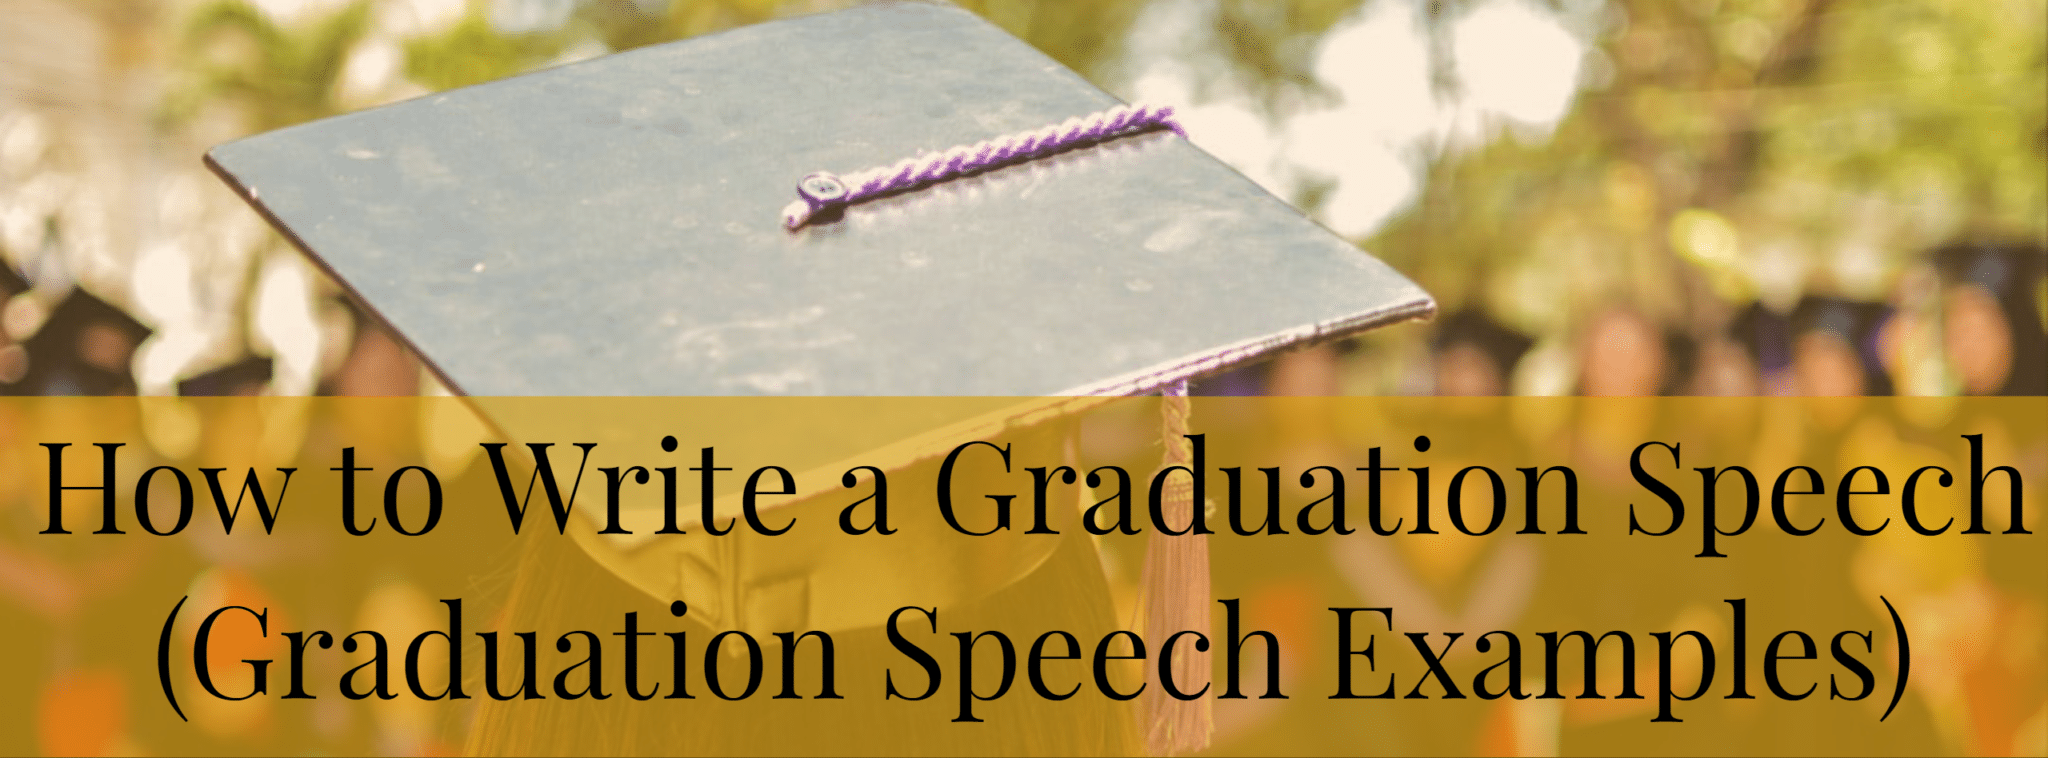 https://www.fearlesspresentations.com/wp-content/uploads/2019/07/How-to-Write-a-Graduation-Speech-Graduation-Speech-Examples